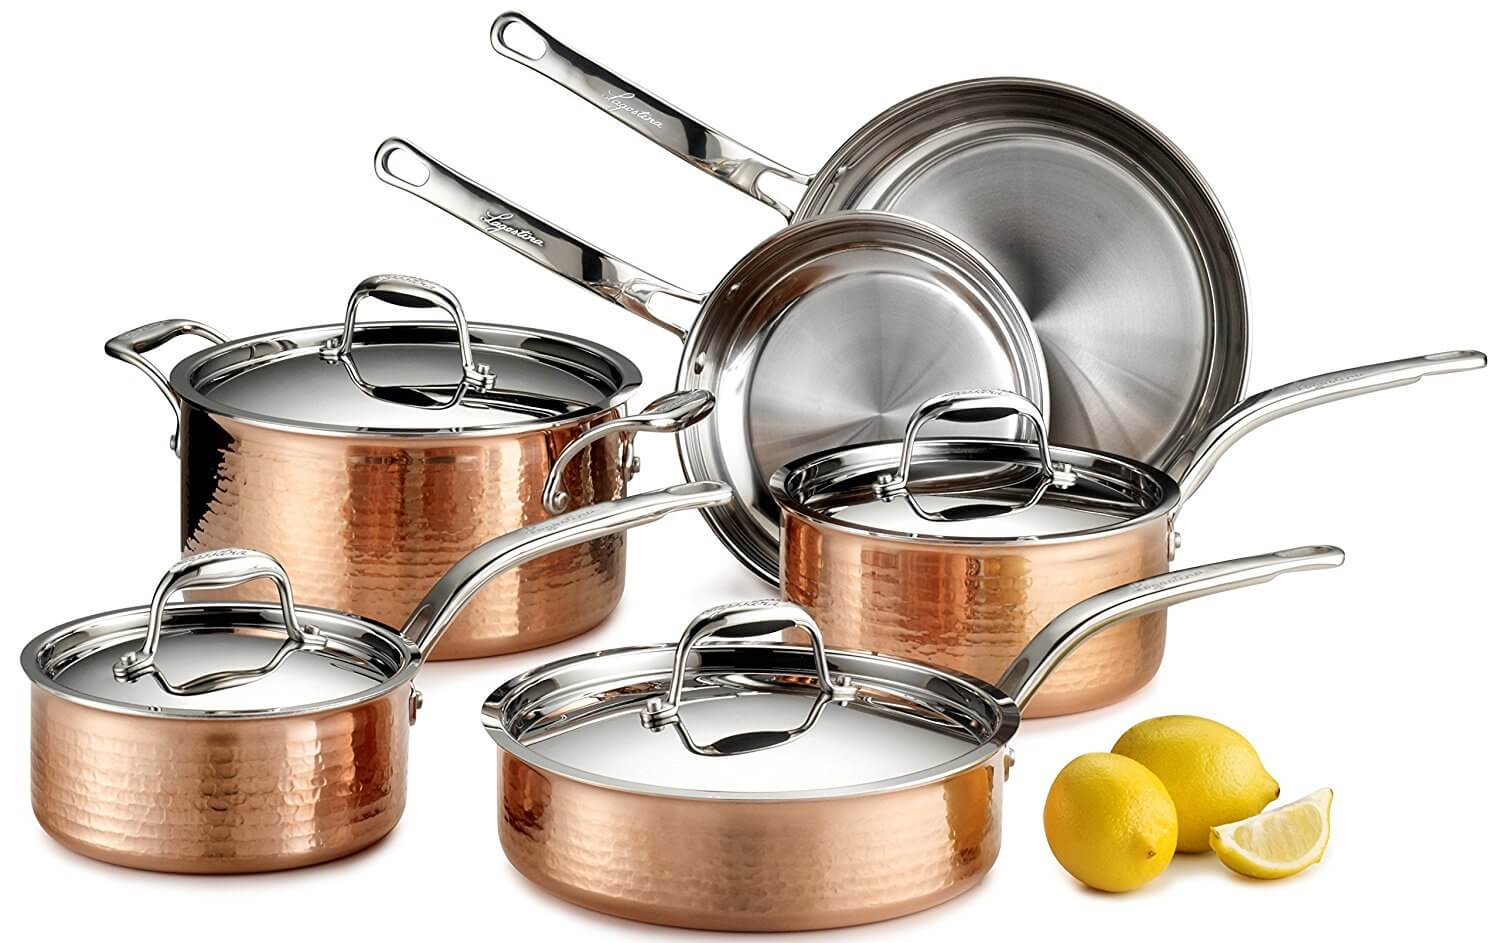 10 Best Copper Stainless Steel Cookware 2020 All Inclusive Guide